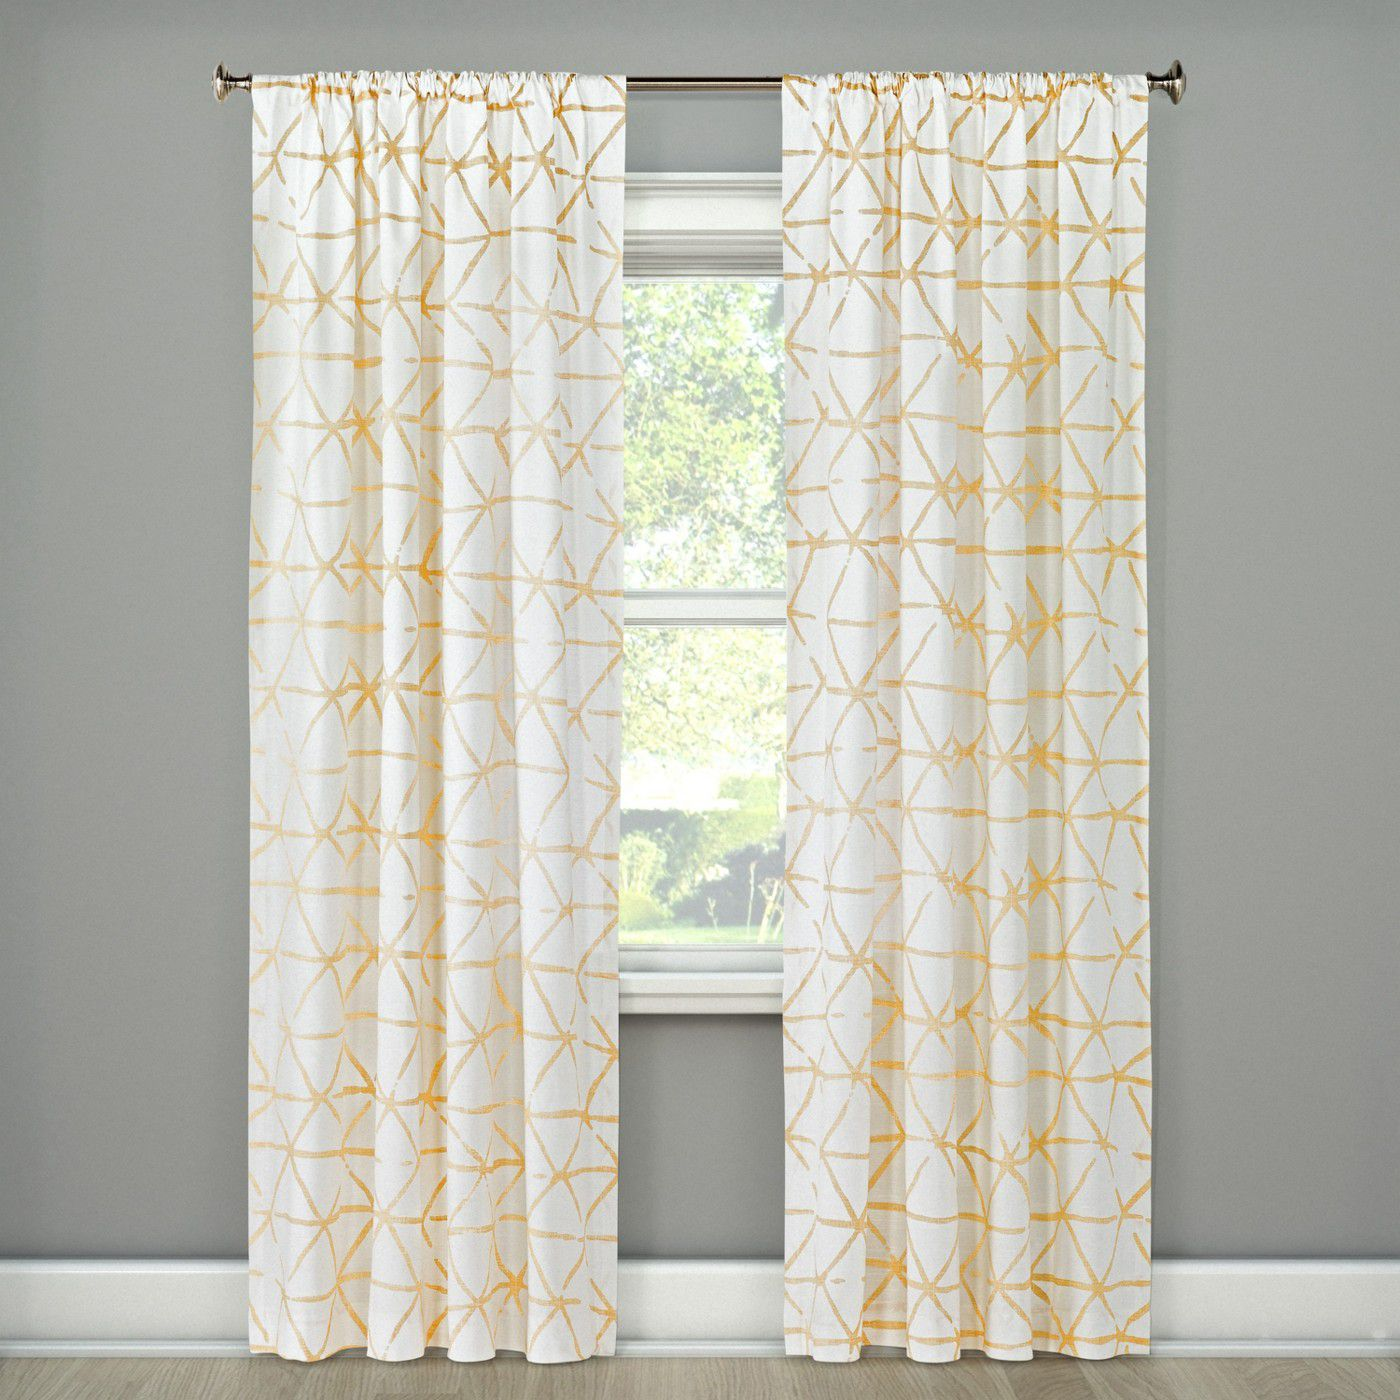 The Best Places To Curtains In 2020